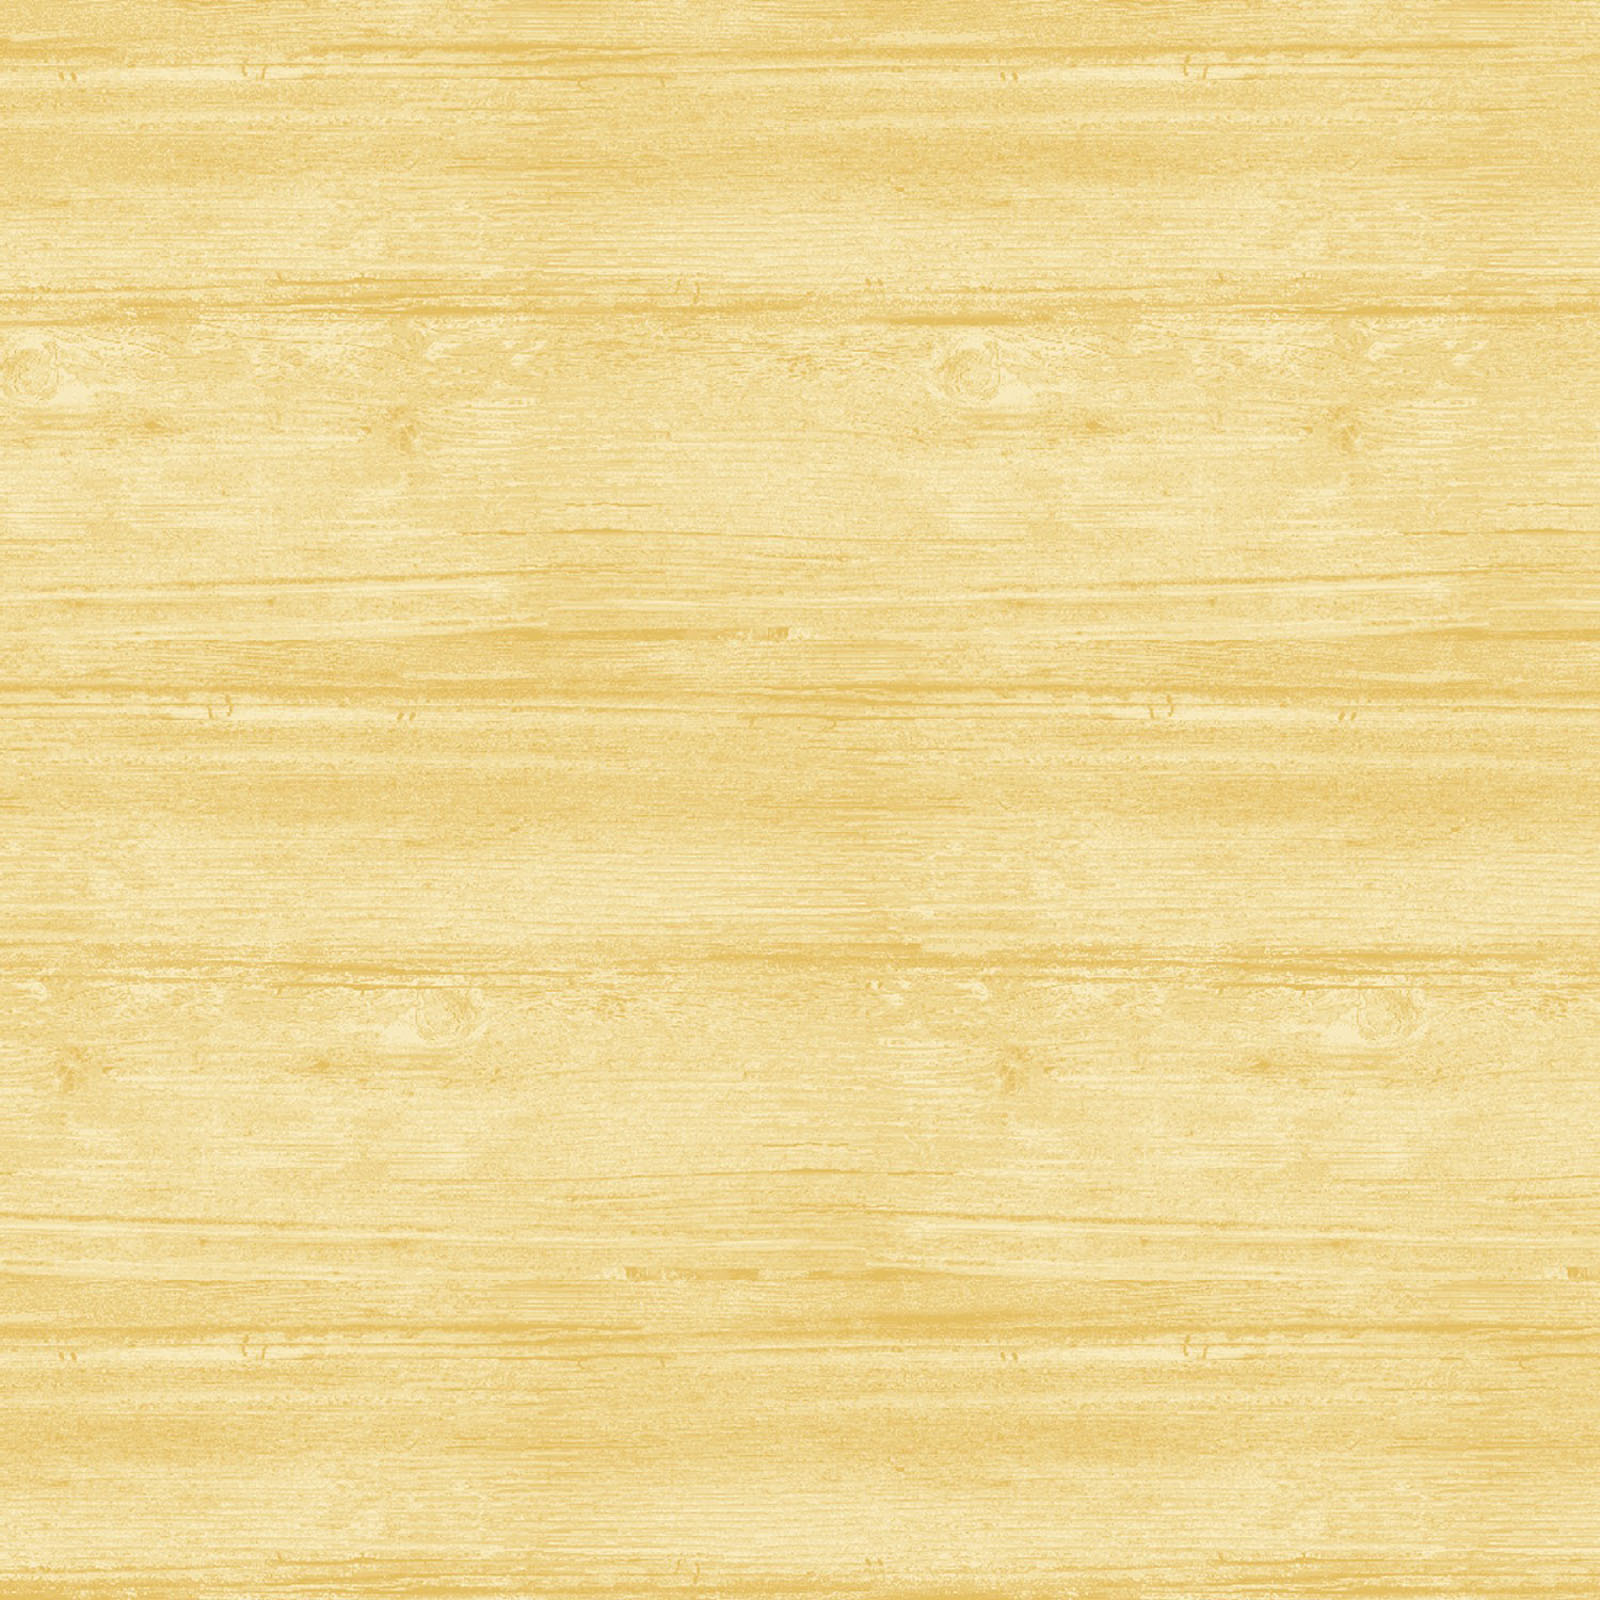 Washed Wood Basic - straw